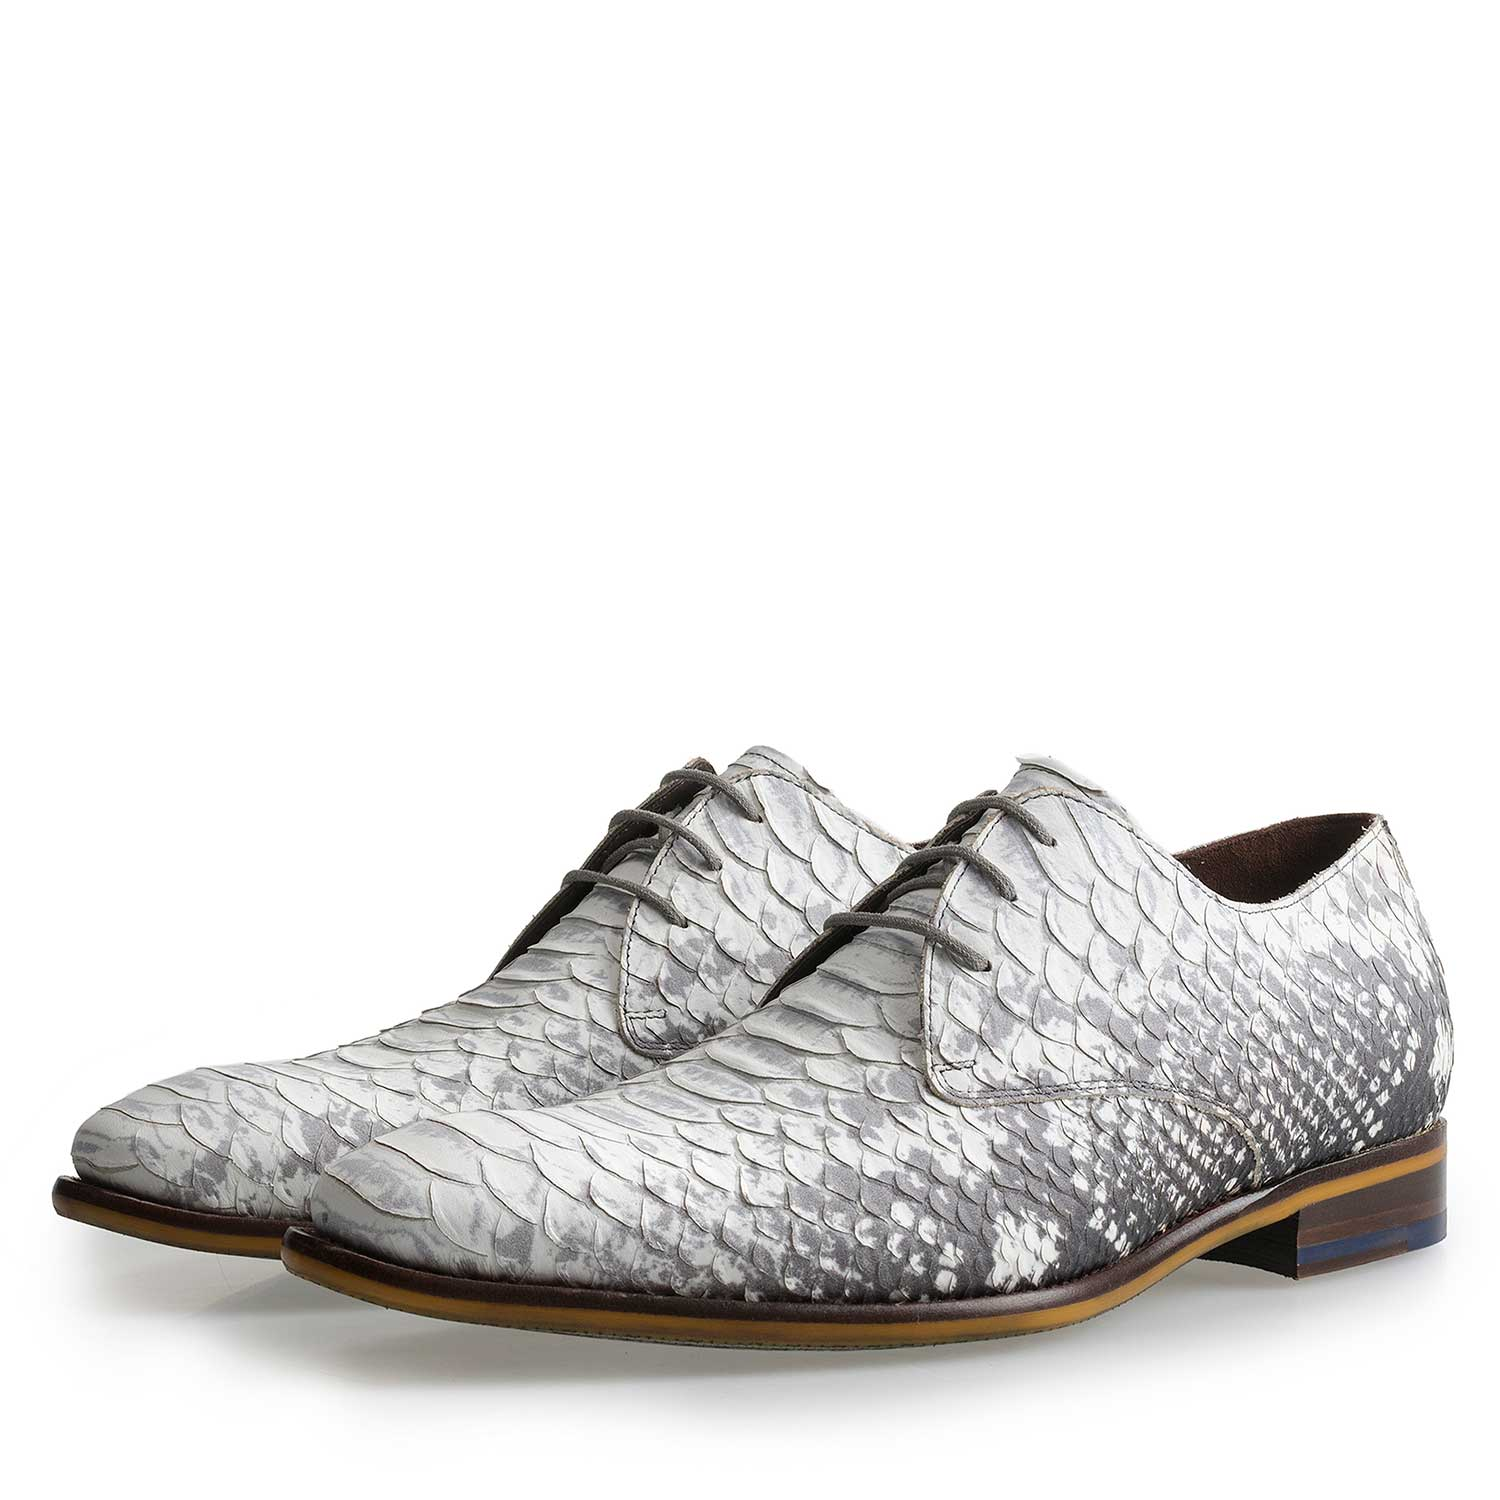 14109/02 - Grey leather lace shoe with snake print